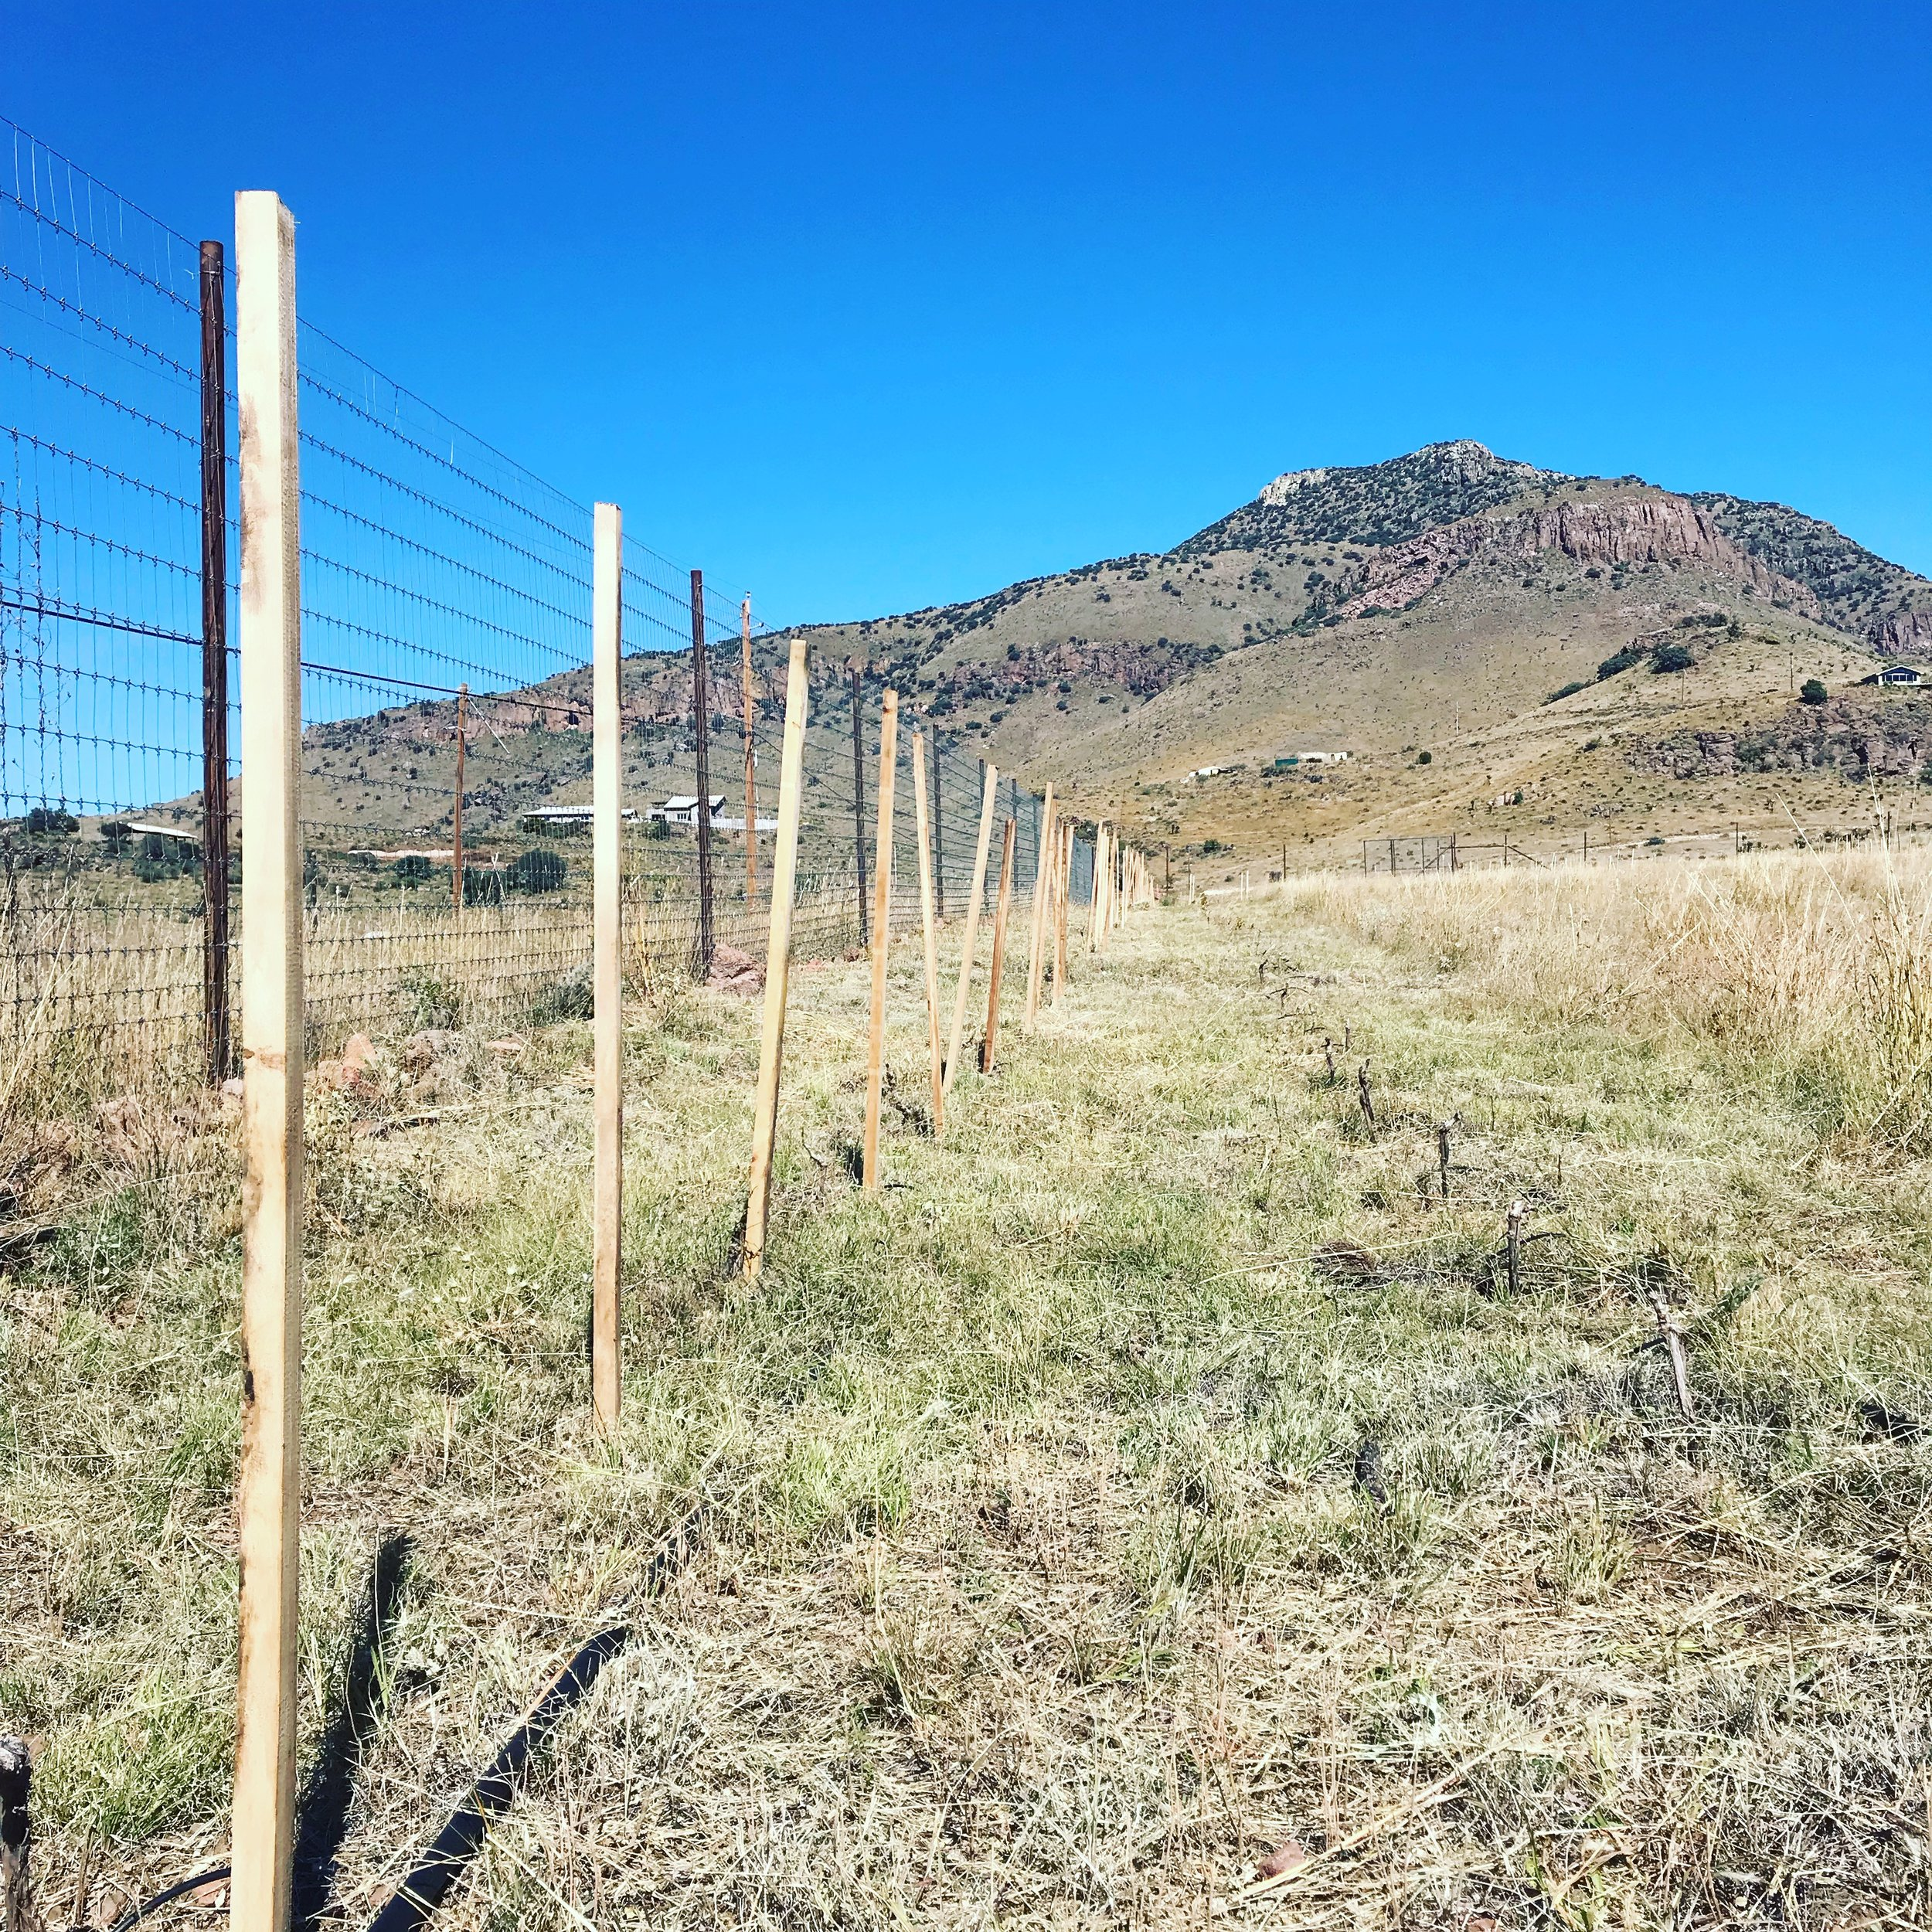 We are in the process of installing 6,000 plus untreated hardwood stakes. Each vine will have a stake for support as it grows. Mowing the grasses that have grown up in the vineyard throughout the growing season is another task we are working on currently. This mowing has several purposes. First, Because we are mowing the grass before it dies and dries out completely it will become green mulch and help build the soil as it composts. Second, the winter and spring in the Davis Mountains is extremely dry and windy, this means there is extreme danger of wildfires, by mowing we are removing potential fuel for a wildfire so that if one were to move through the vineyard it would run out of things to burn before the vines were damaged. Third, by creating a layer of green mulch on the surface of the soil we hope to prevent as much moisture as possible from evaporating out of the soil during the dry winter and spring.